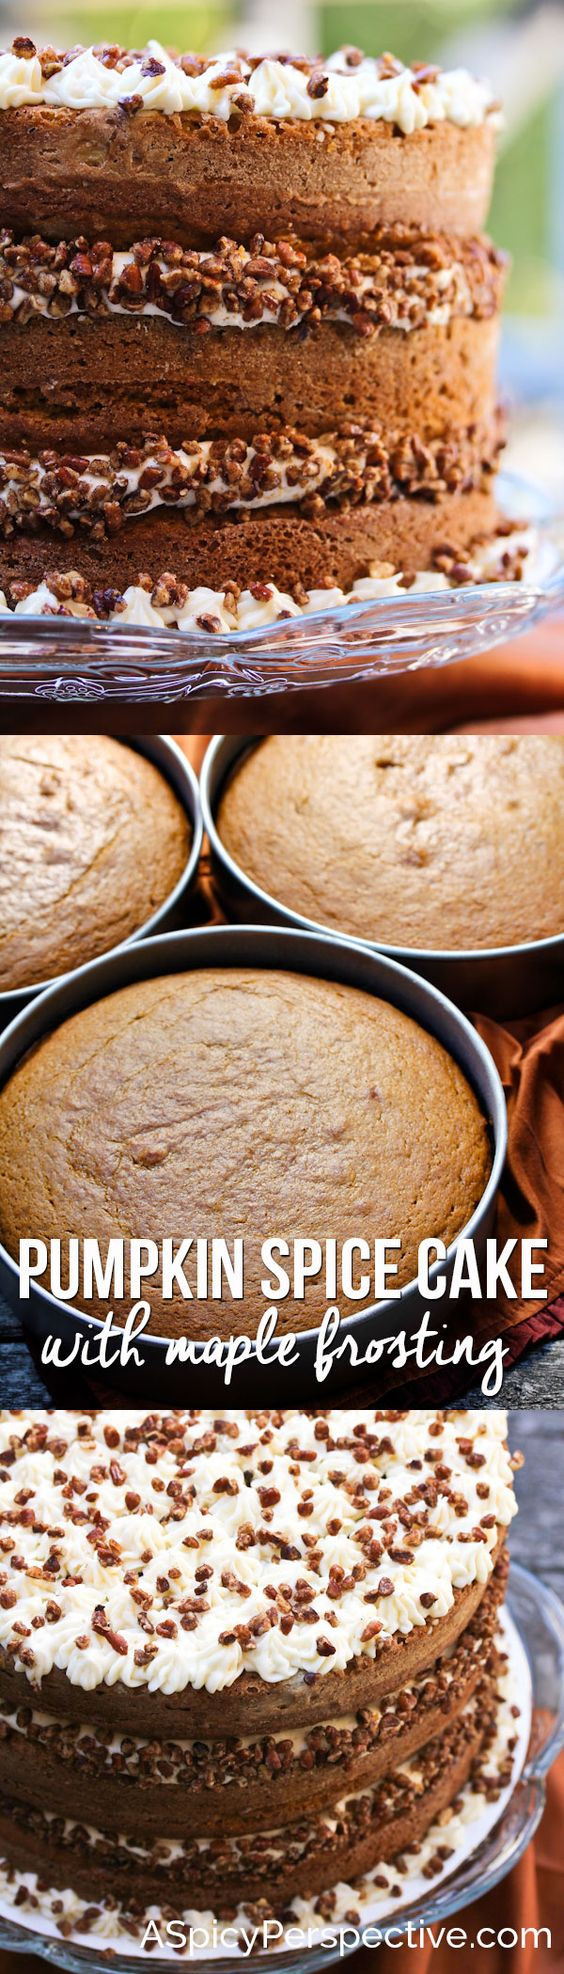 Pumpkin Spice Cake with Maple Frosting | Recipe | Pumpkins, Cakes and ...